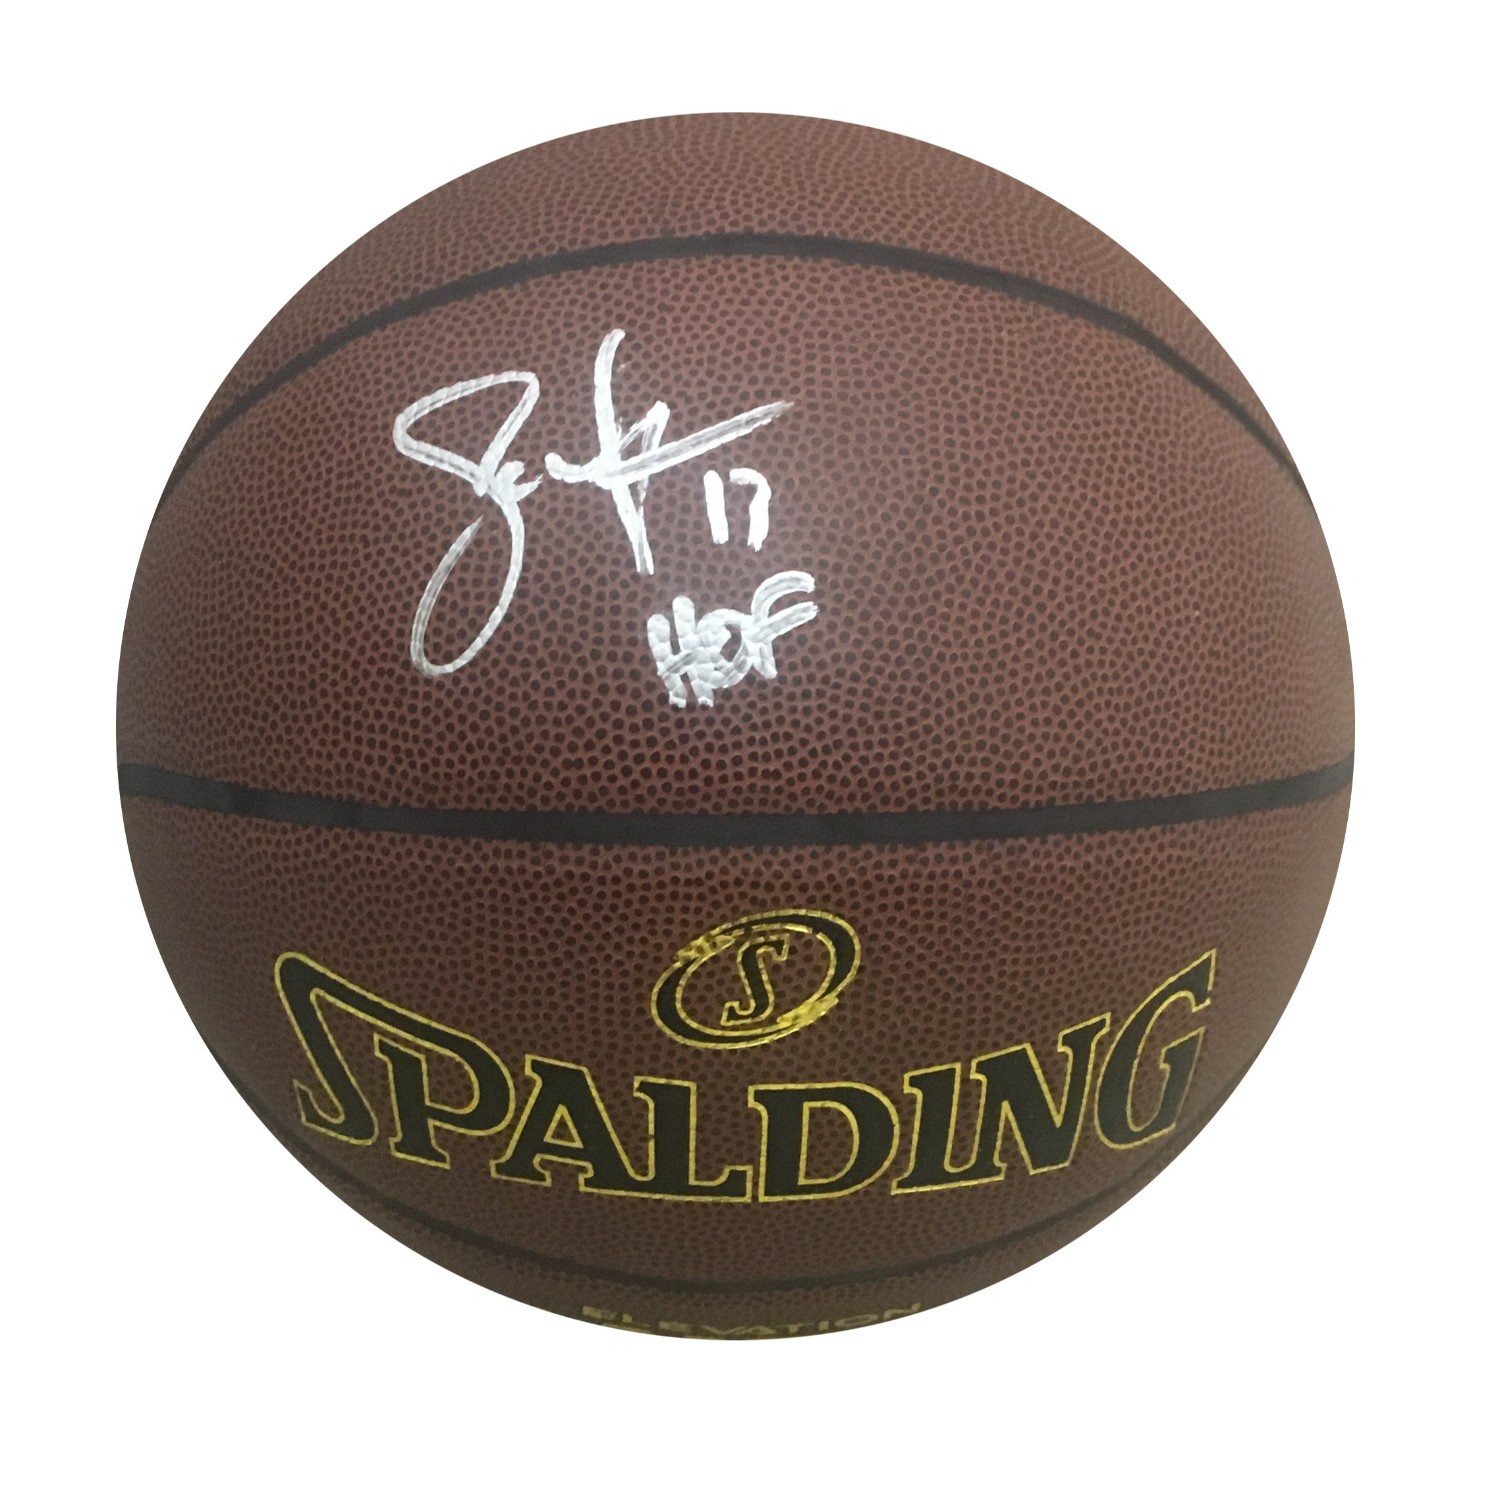 Steve Nash Phoenix Suns Hall of Fame HOF Autographed NBA Signed Basketball JSA COA 4